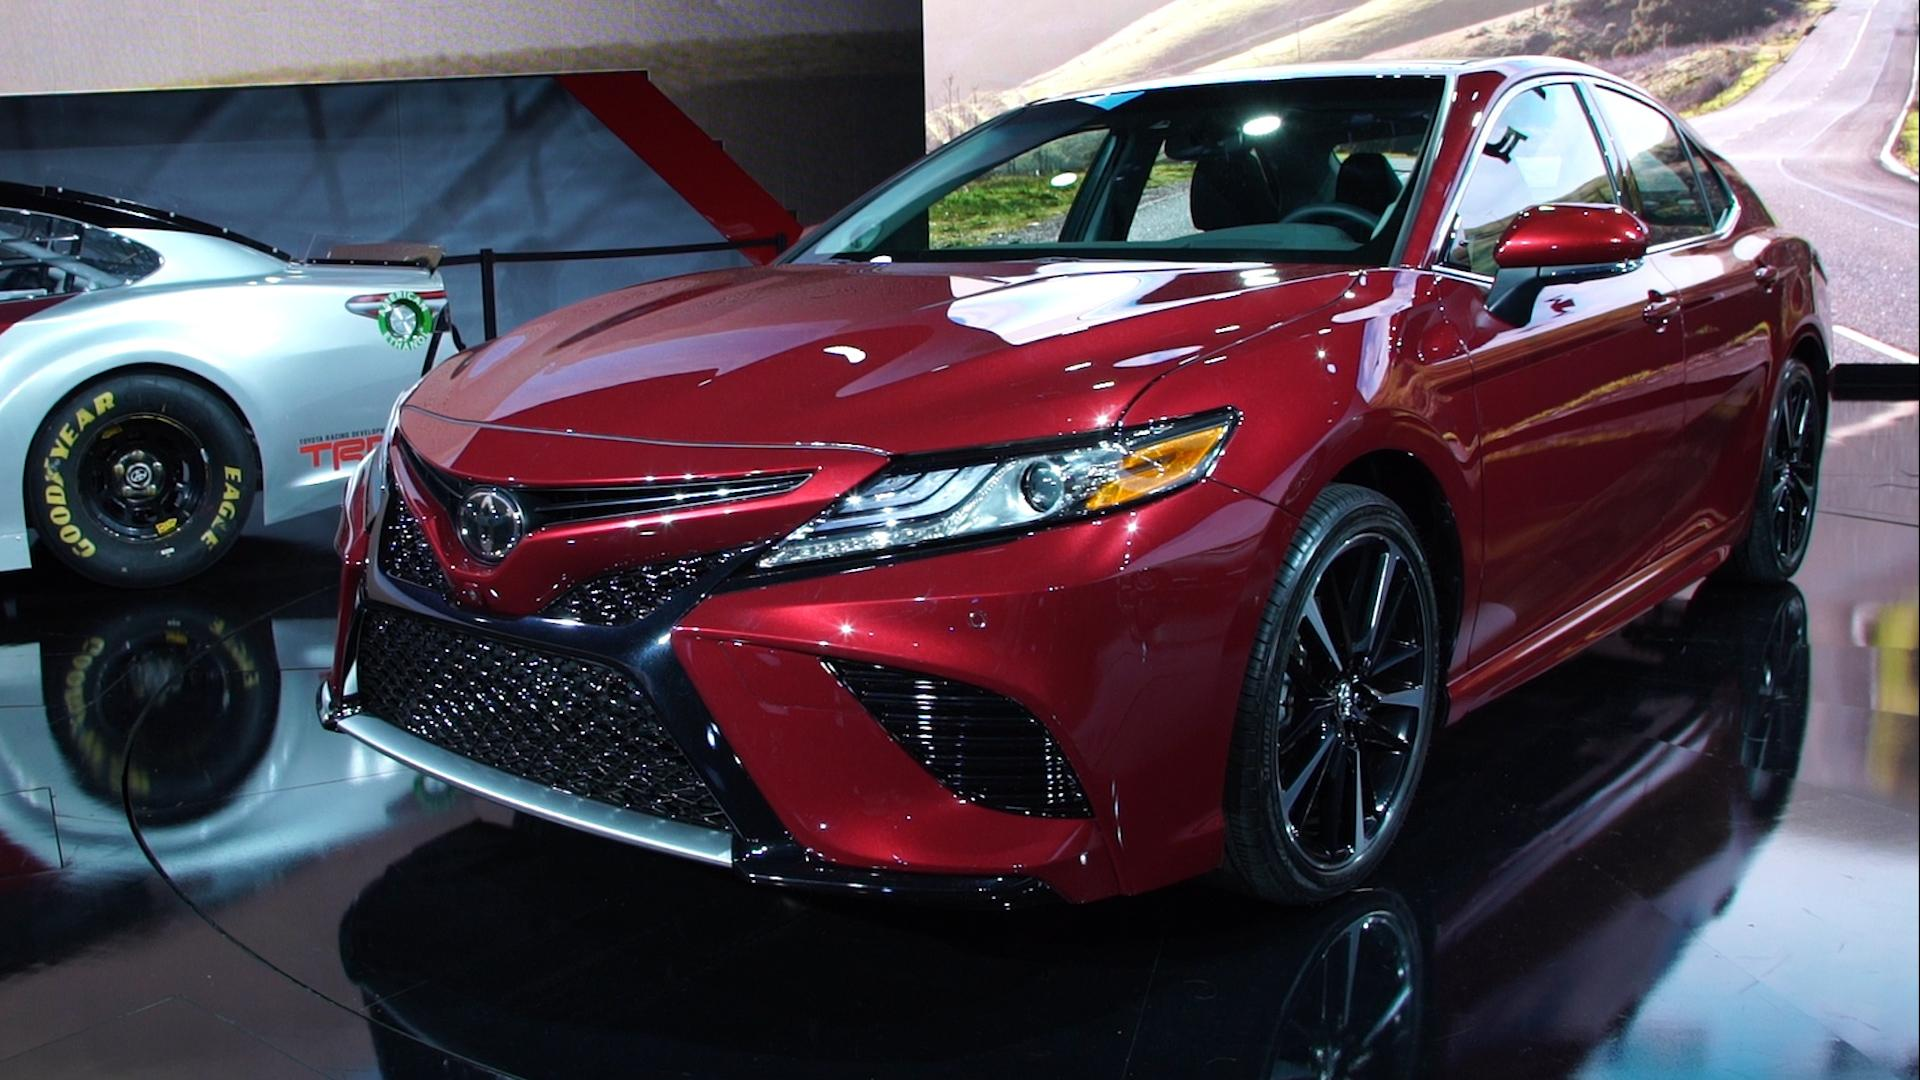 Toyota Camry: If your vehicle has to be stopped in an emergency